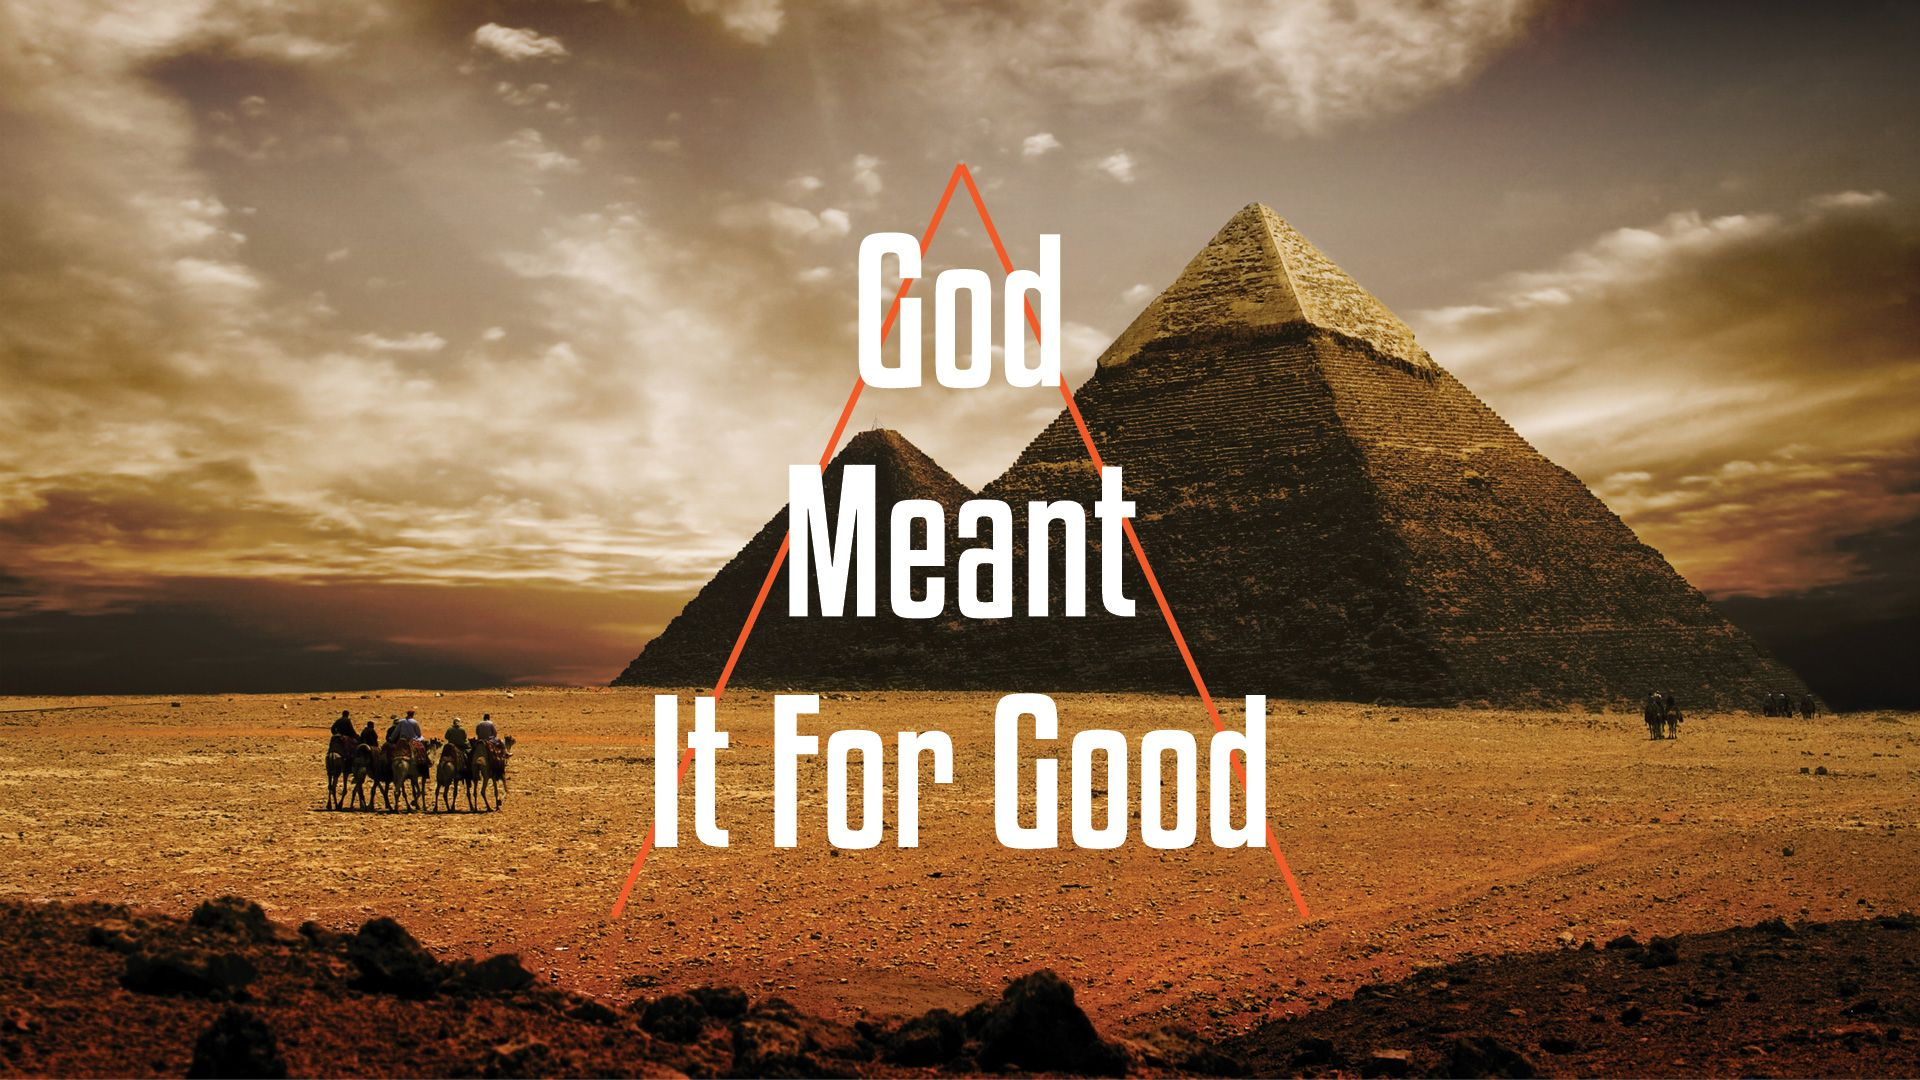 God meant it for good – Genesis 41